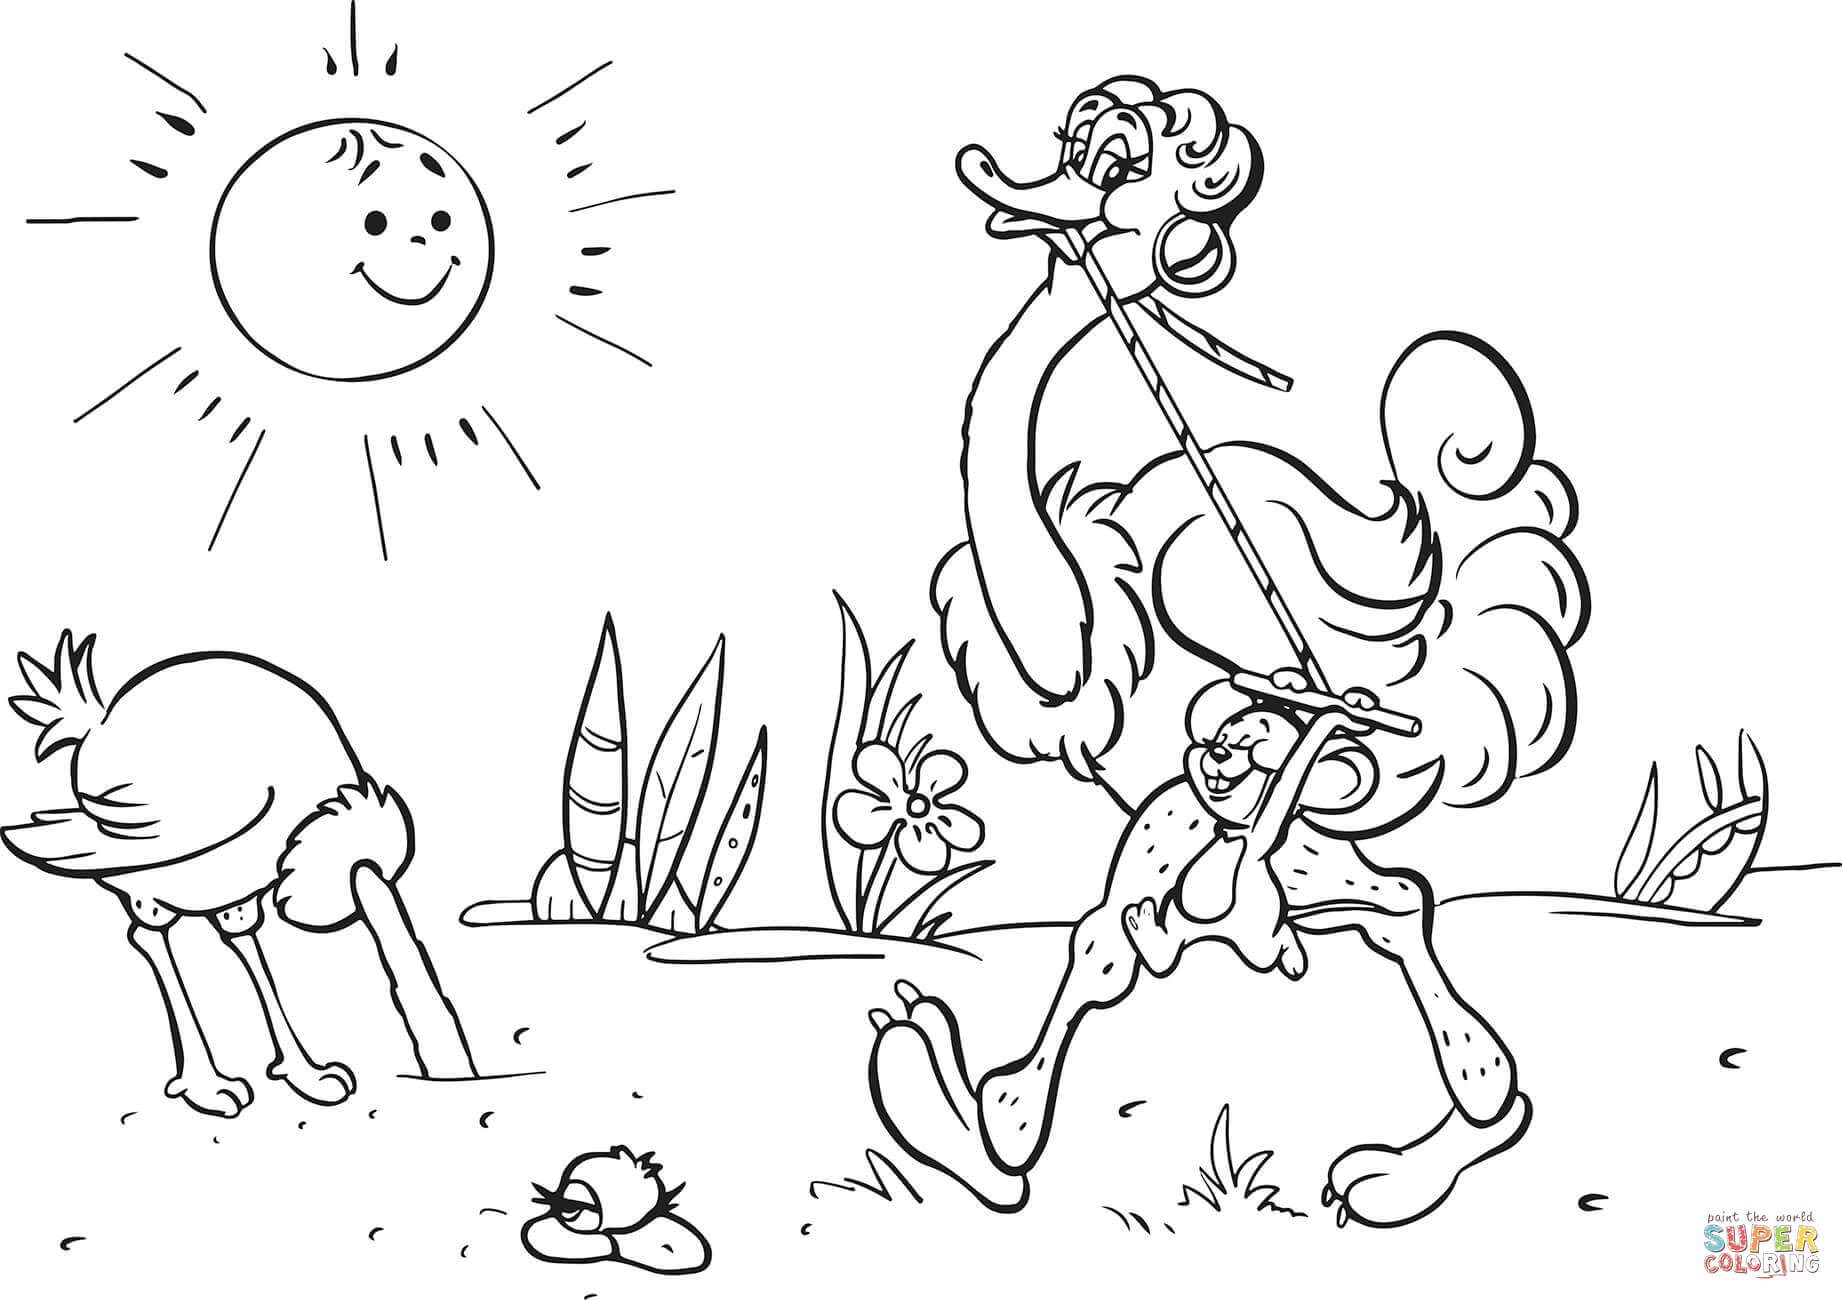 Ostrich And Mouse Are Running Coloring Page